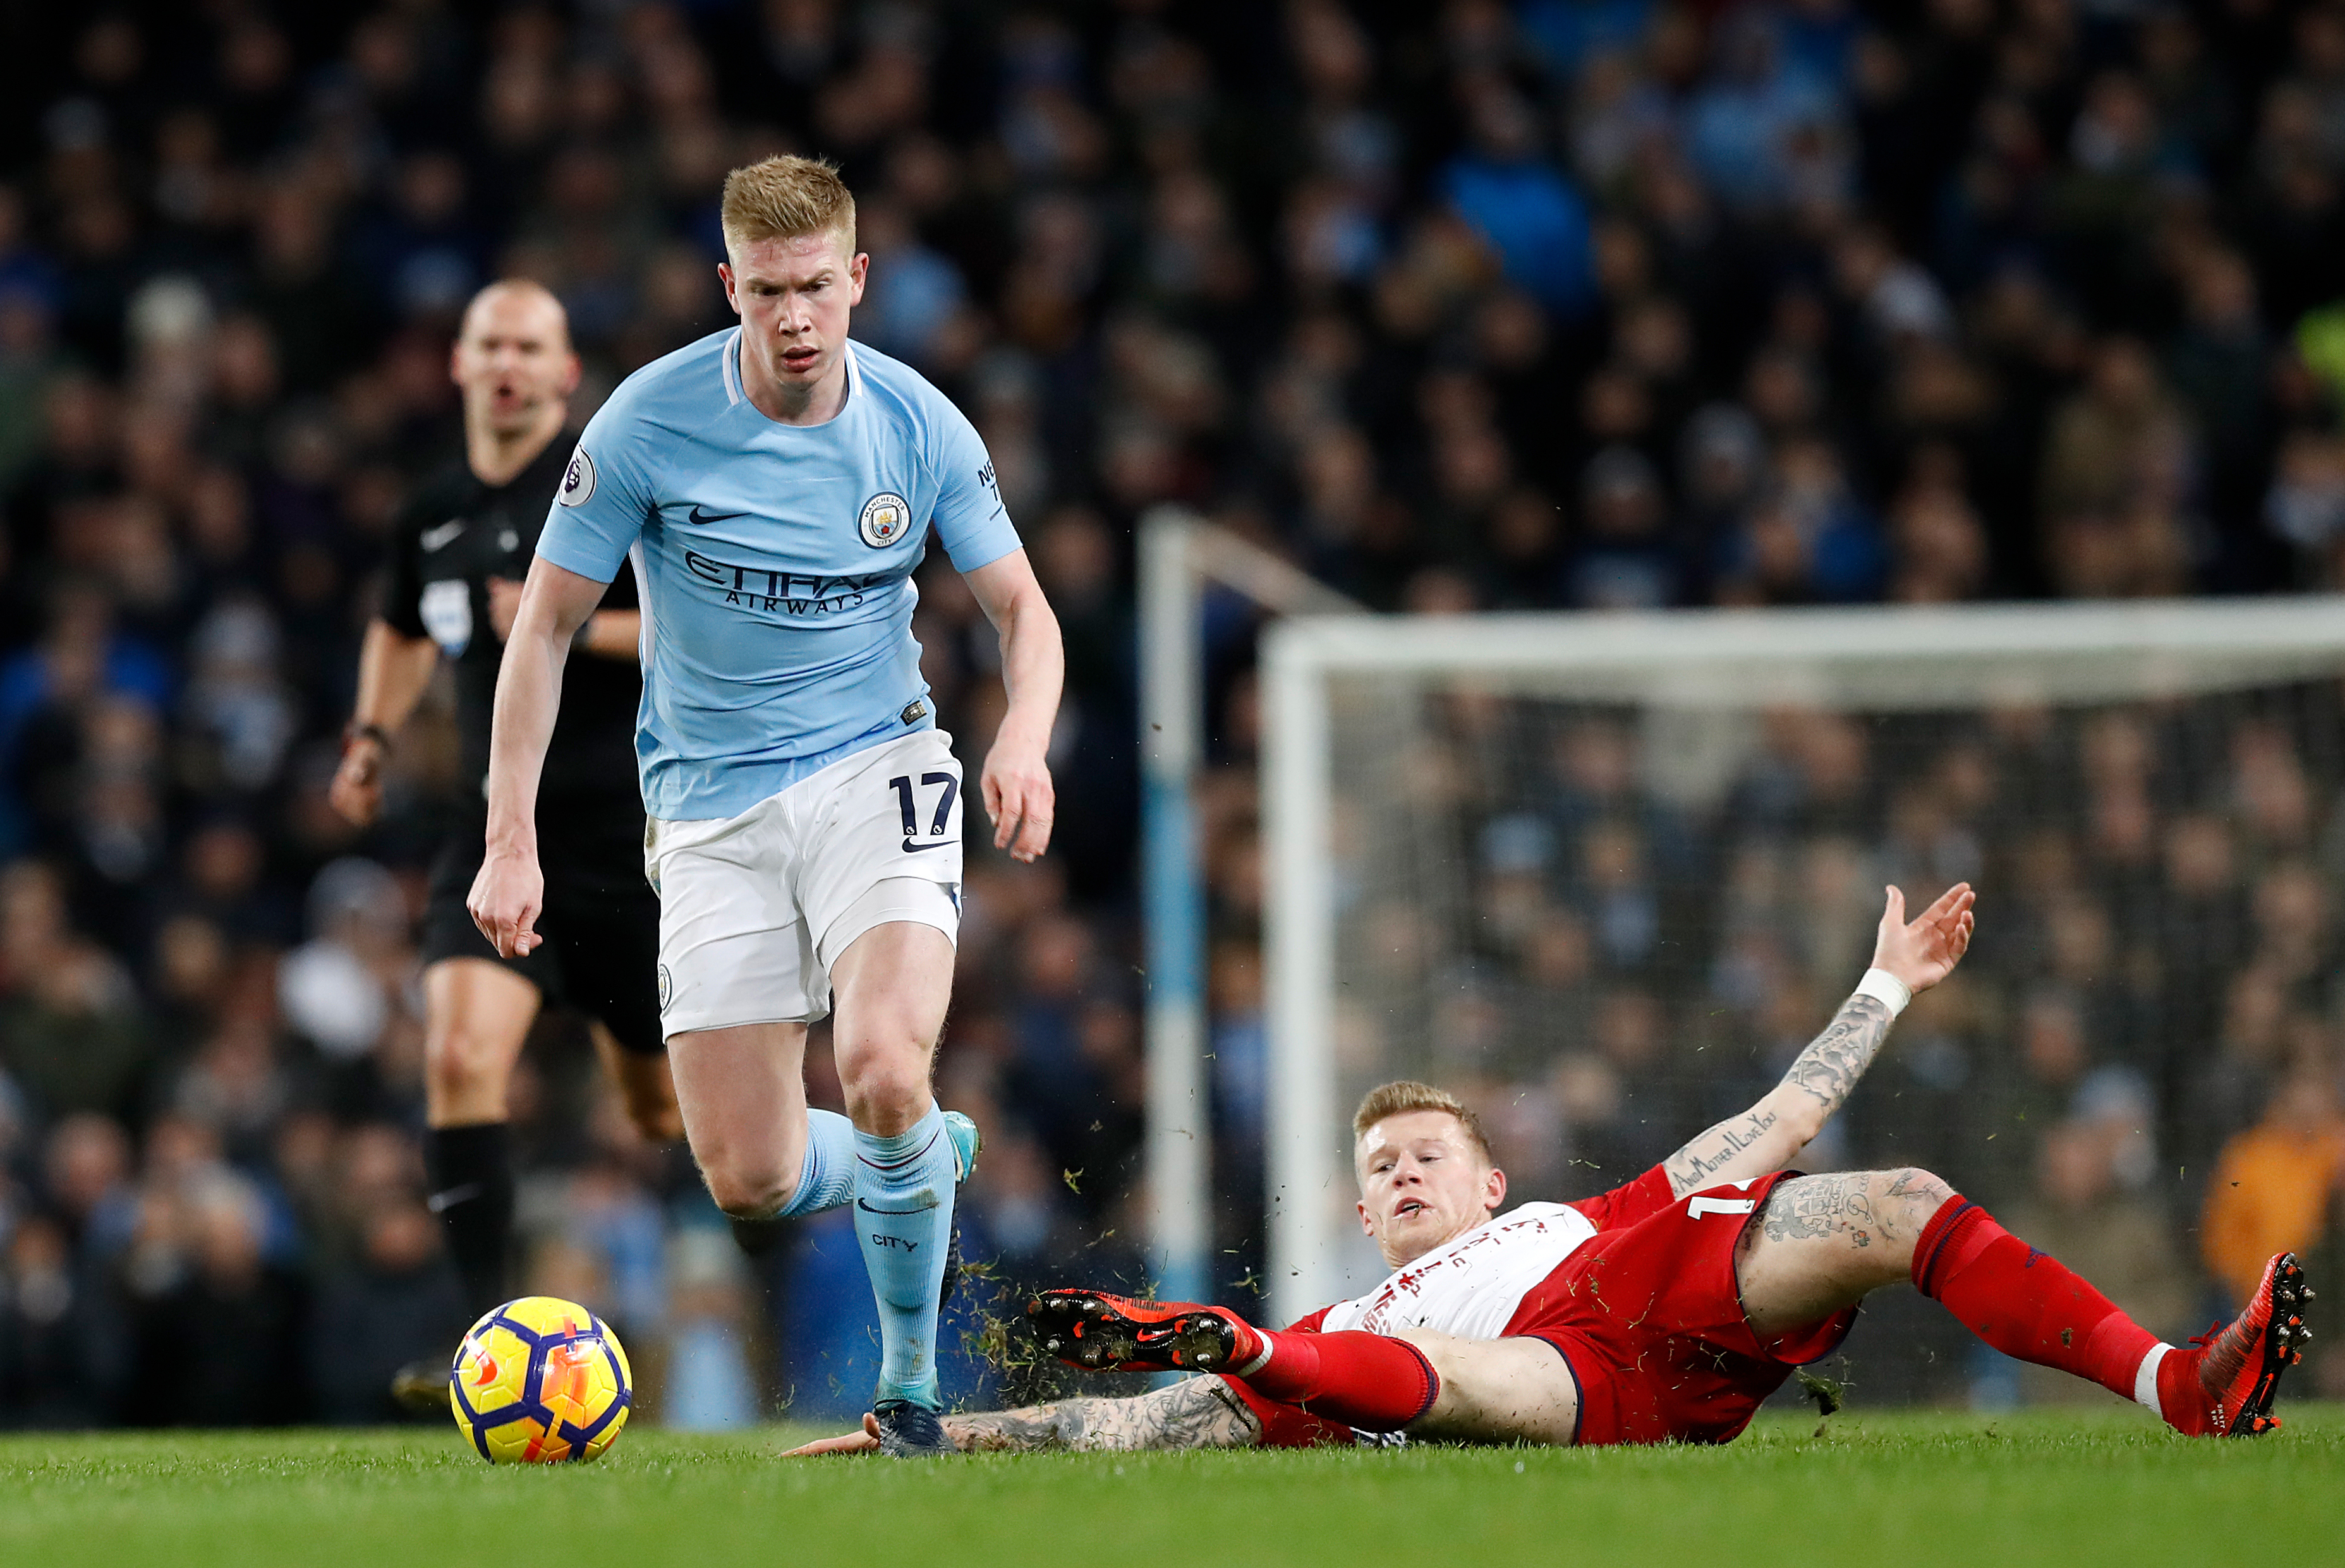 FA Cup: Man City cruises past Cardiff into fifth round